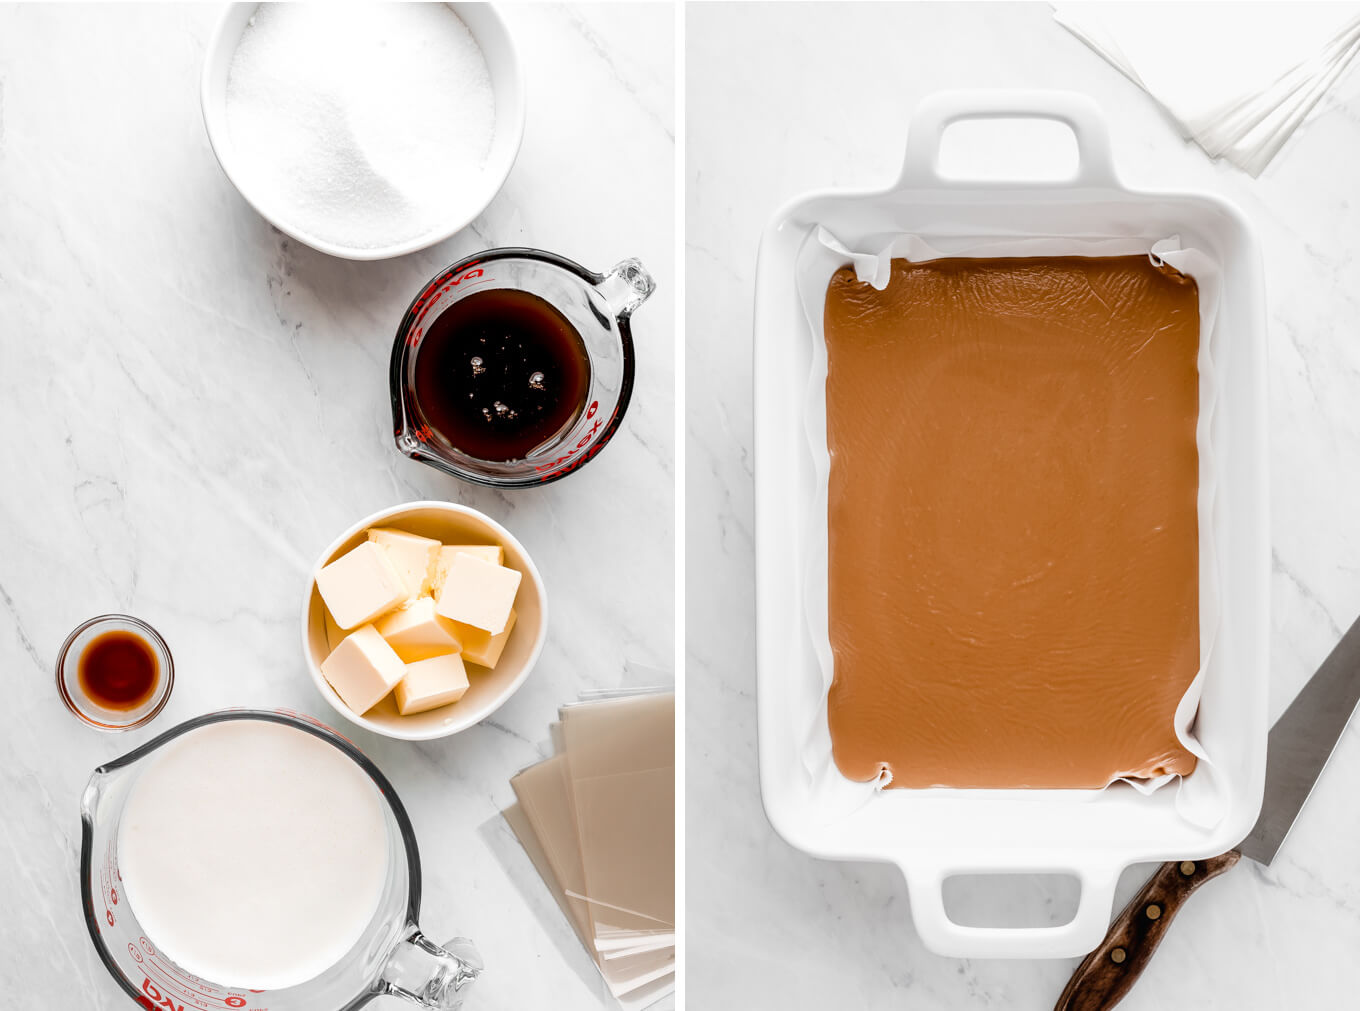 Sugar, dark corn syrup, cubed butted, vanilla, and whipping cream on a marble surface. | Caramel in a white pan and knife at the side.